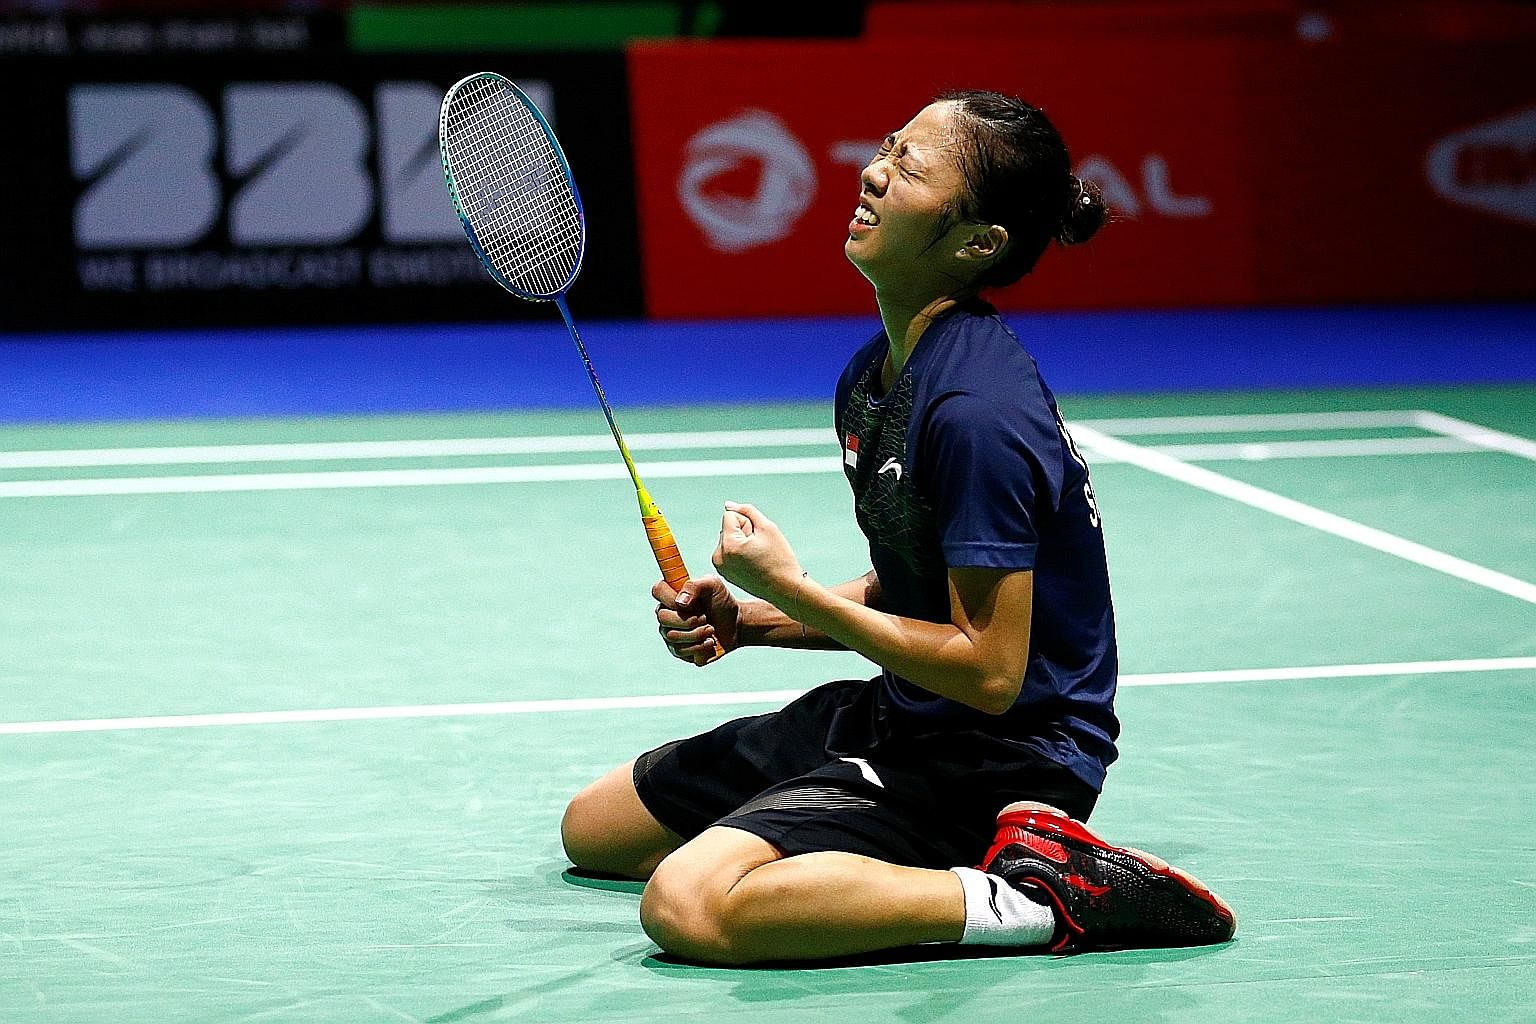 Singaporean shuttler Yeo Jia Min celebrating her 21-15, 14-21, 21-16 win over Vu Thi Trang of Vietnam at the BWF World Championships in Basel, Switzerland, yesterday. With her win, Yeo, 20, became the first Singaporean woman to reach the singles quar